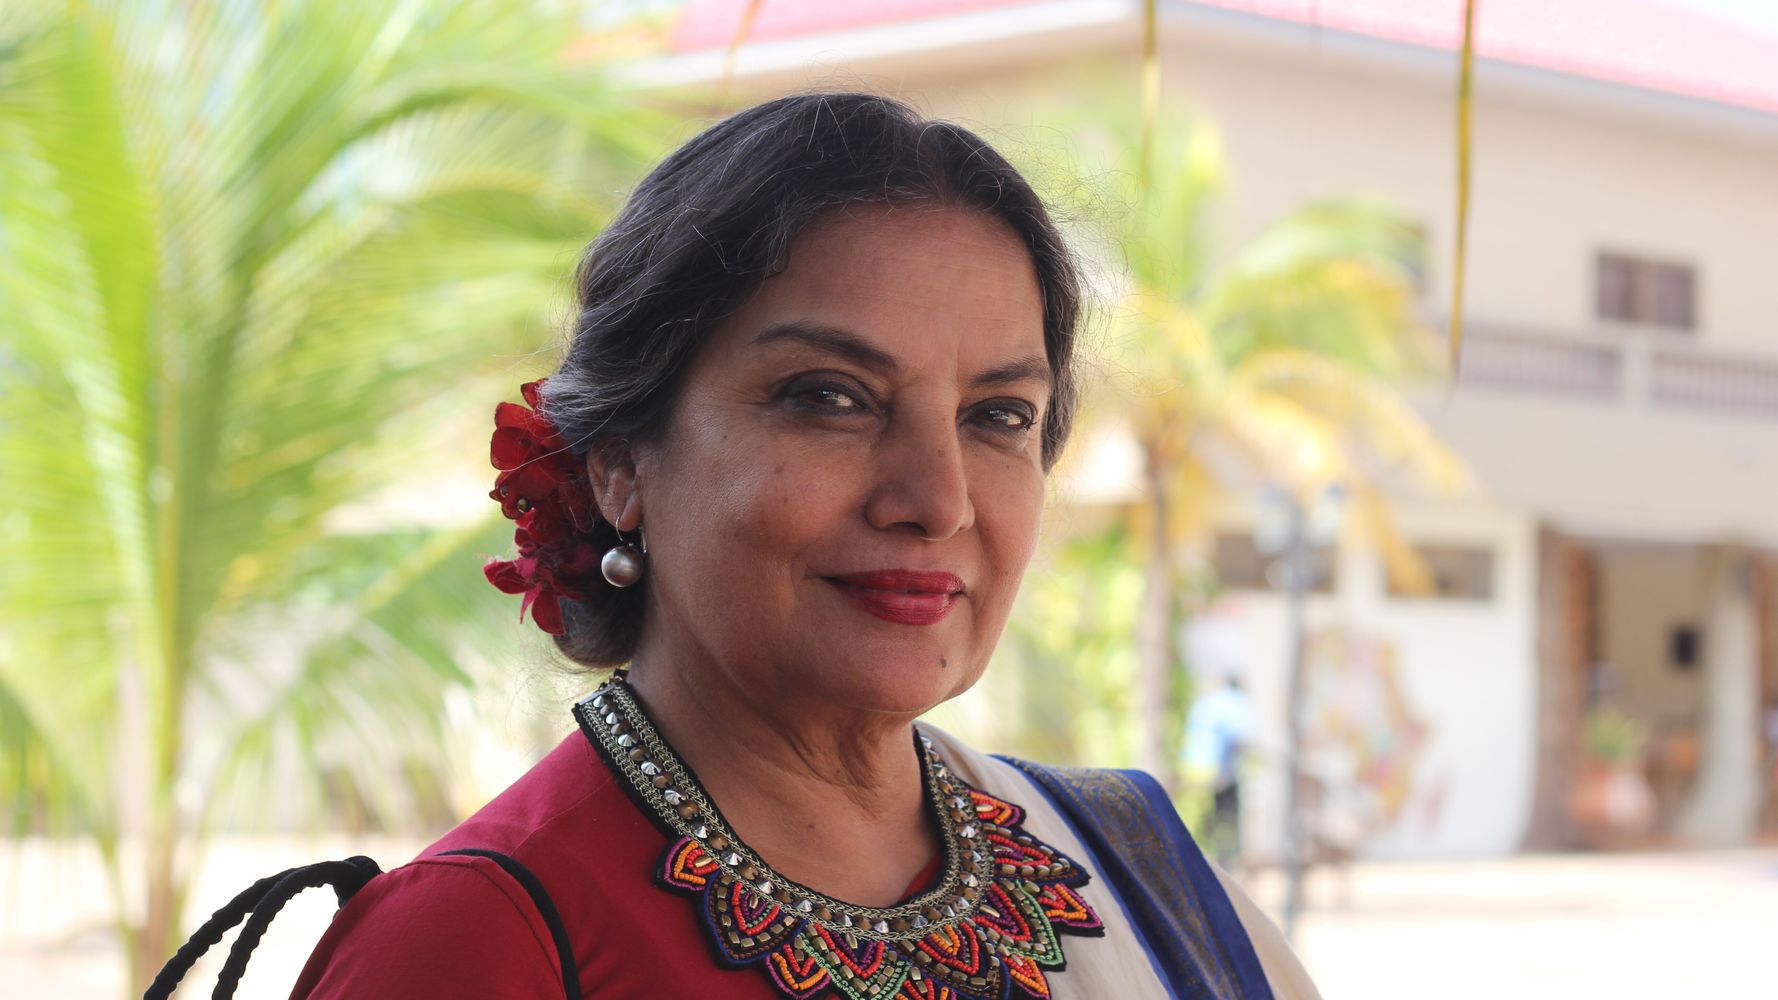 Shabana Azmi On Being Cast In Spielberg's Halo And Why She Likes Taking Up Projects Abroad | HuffPost India Entertainment